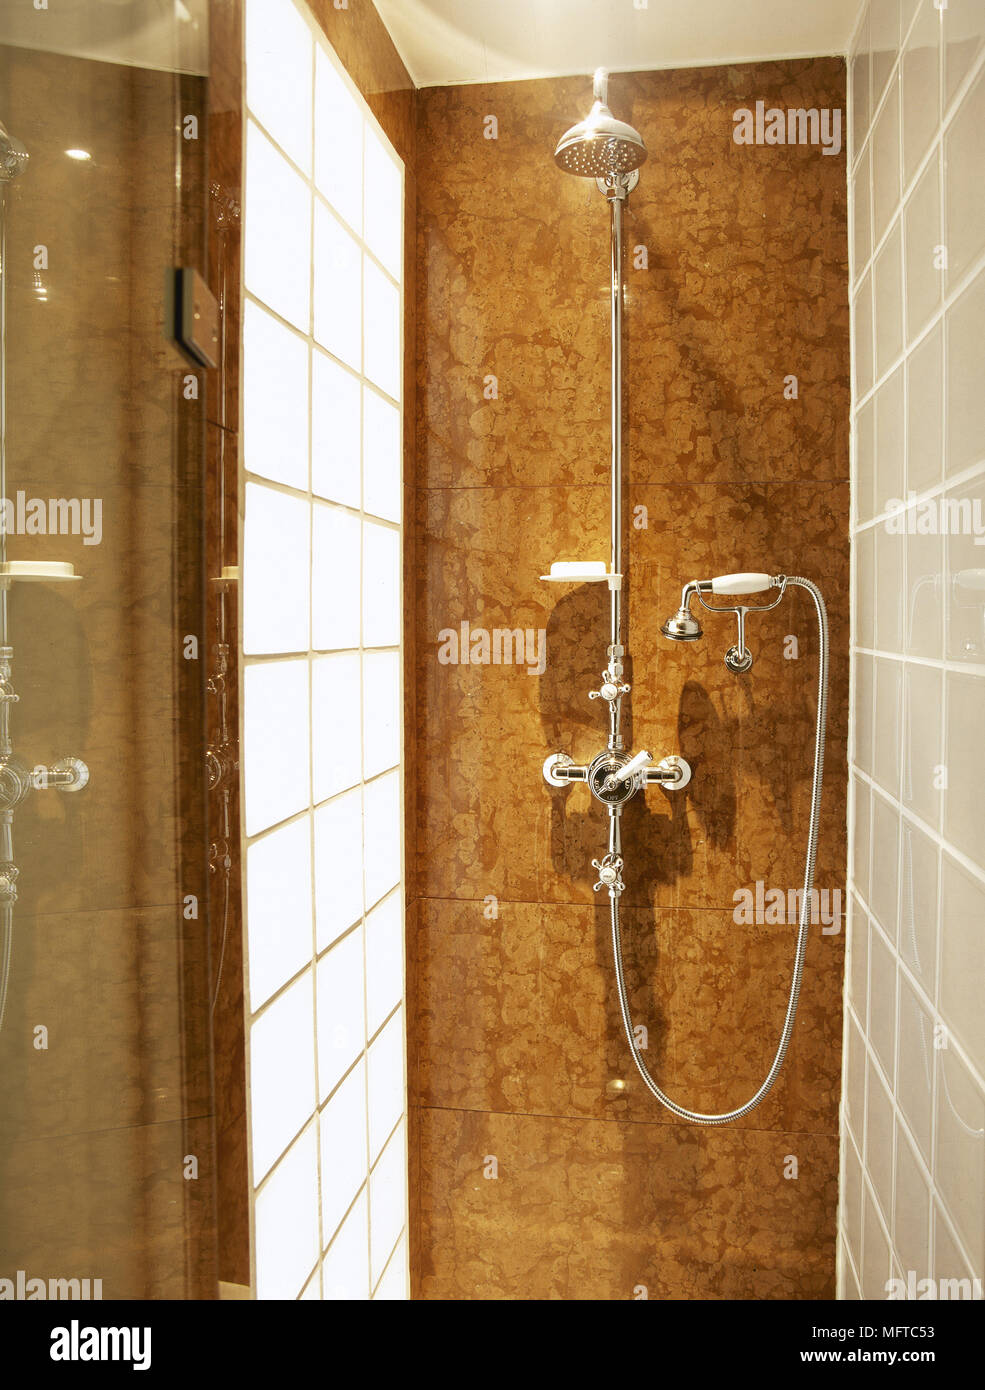 Shower Stall Stock Photos & Shower Stall Stock Images - Alamy